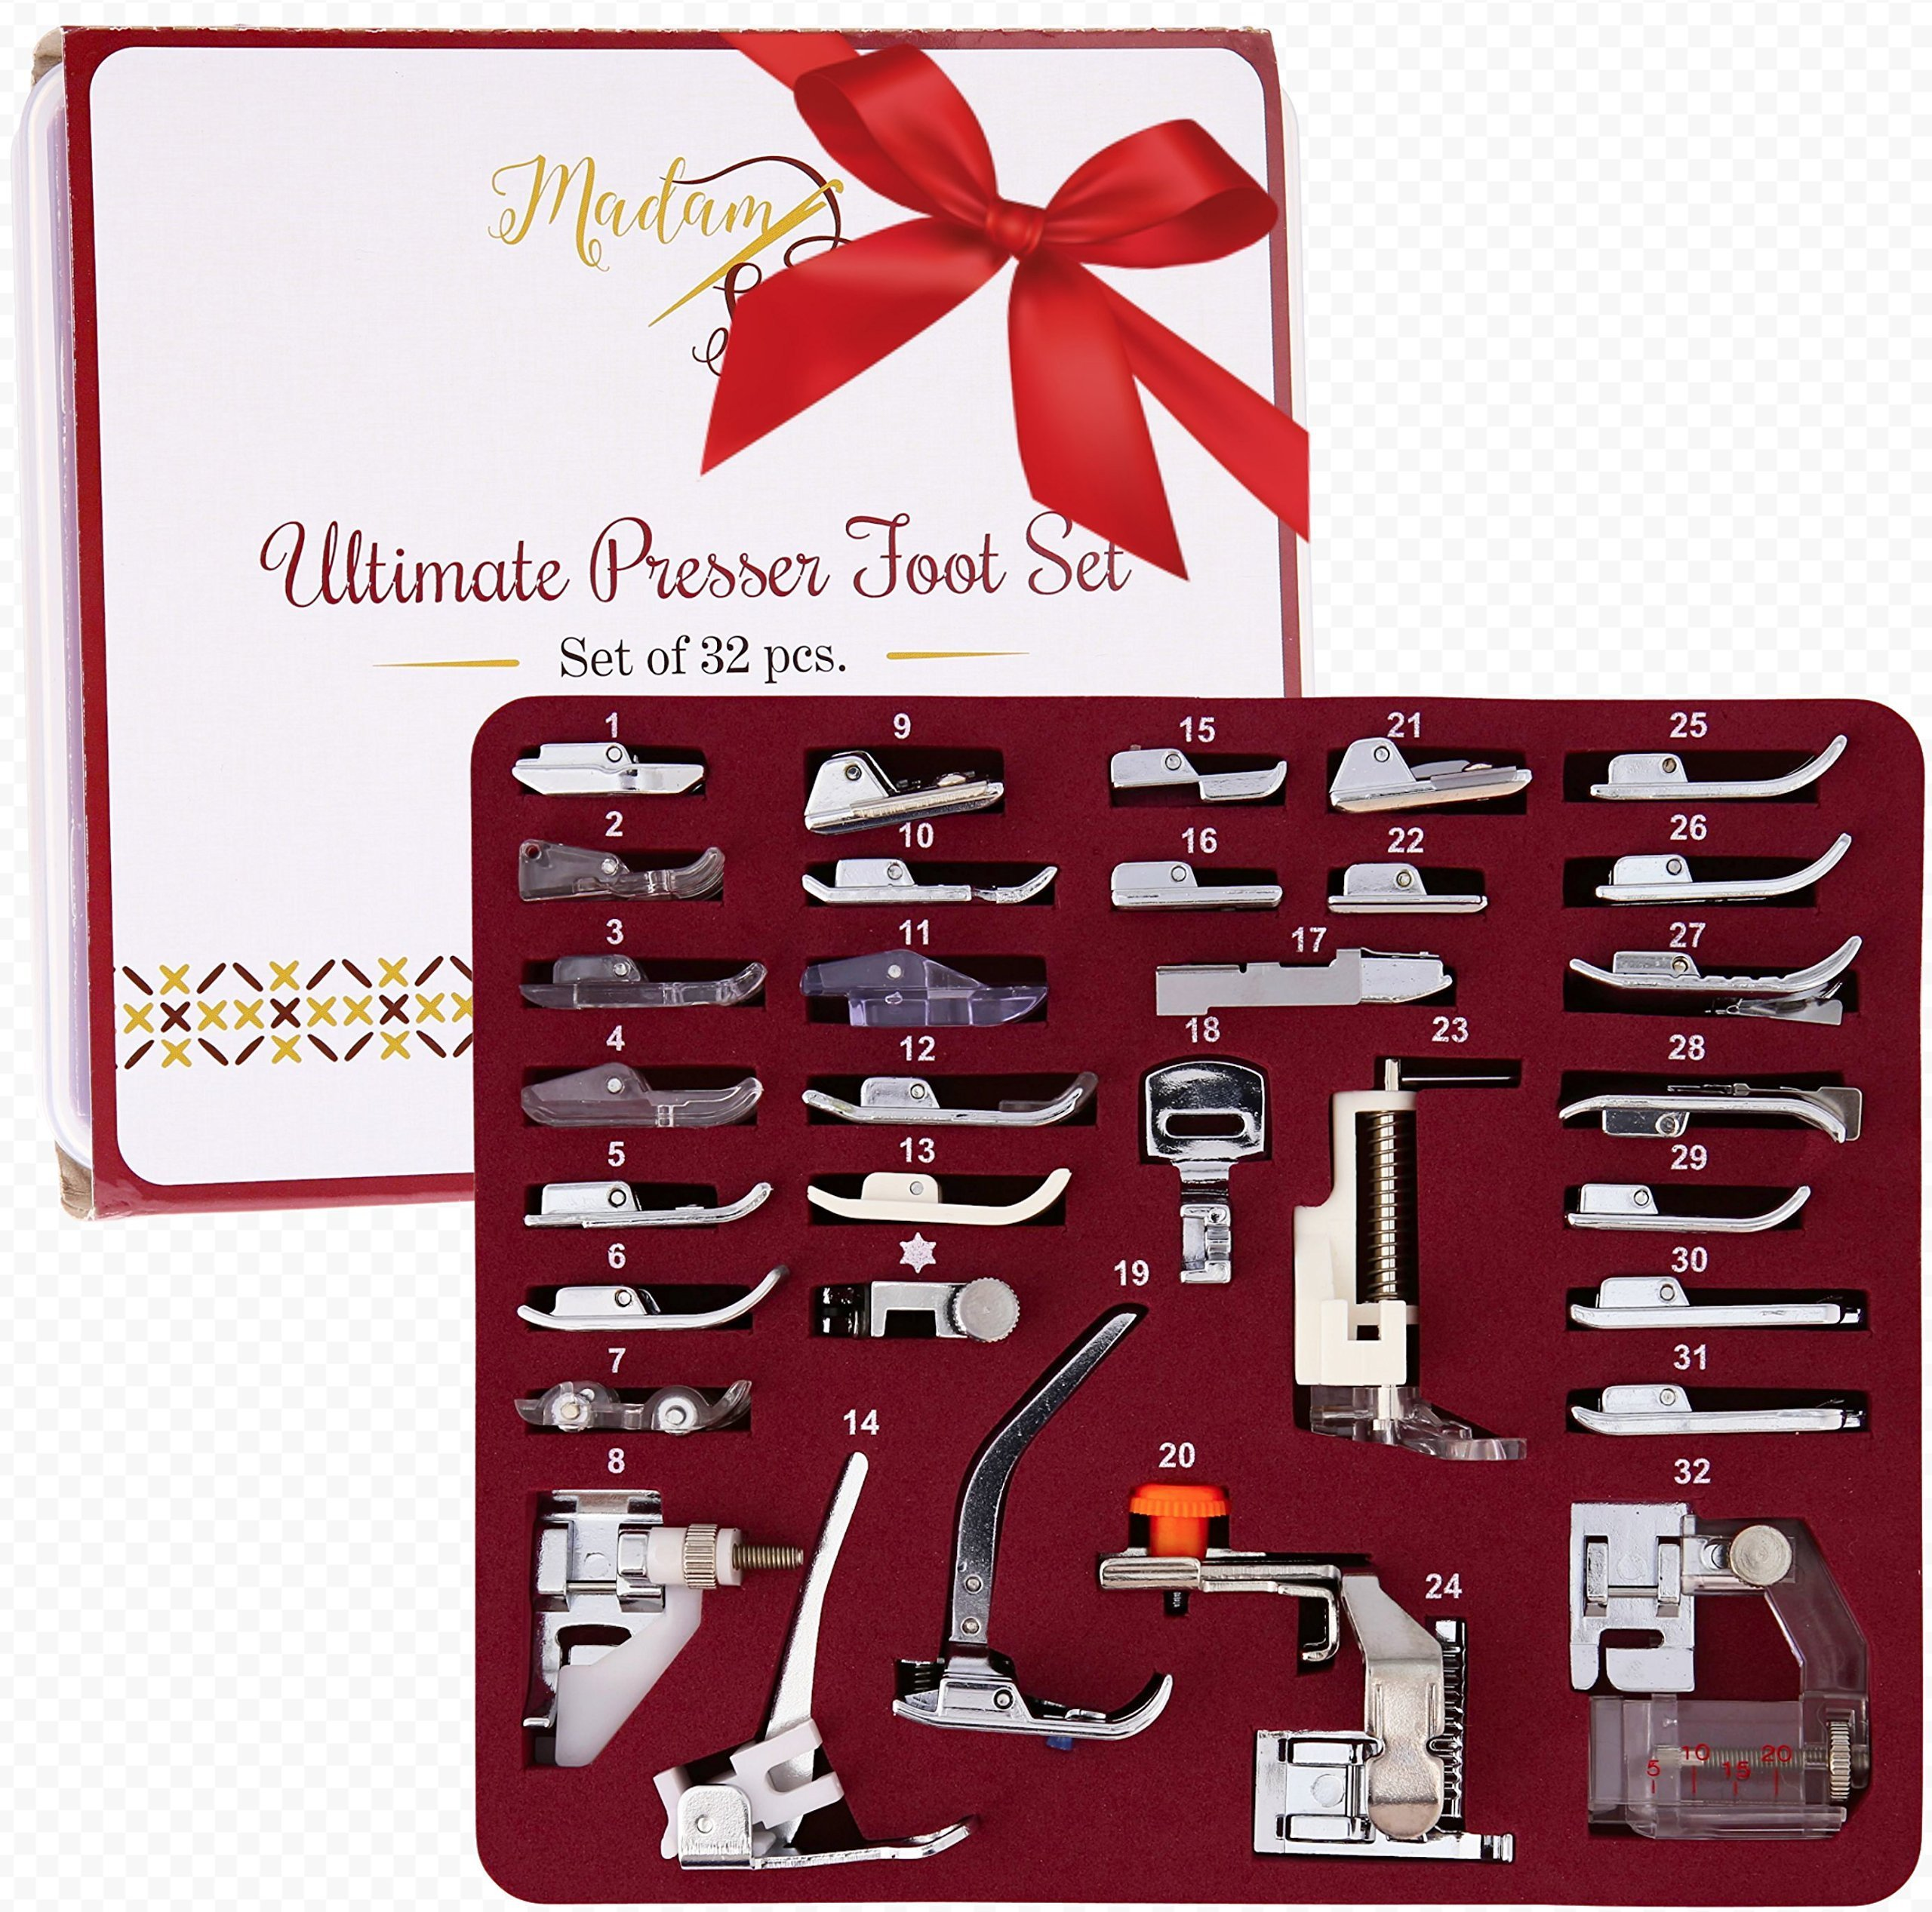 MadamSew Presser Foot Set 32 PCS - The ONLY One with Manual, DVD and Deluxe